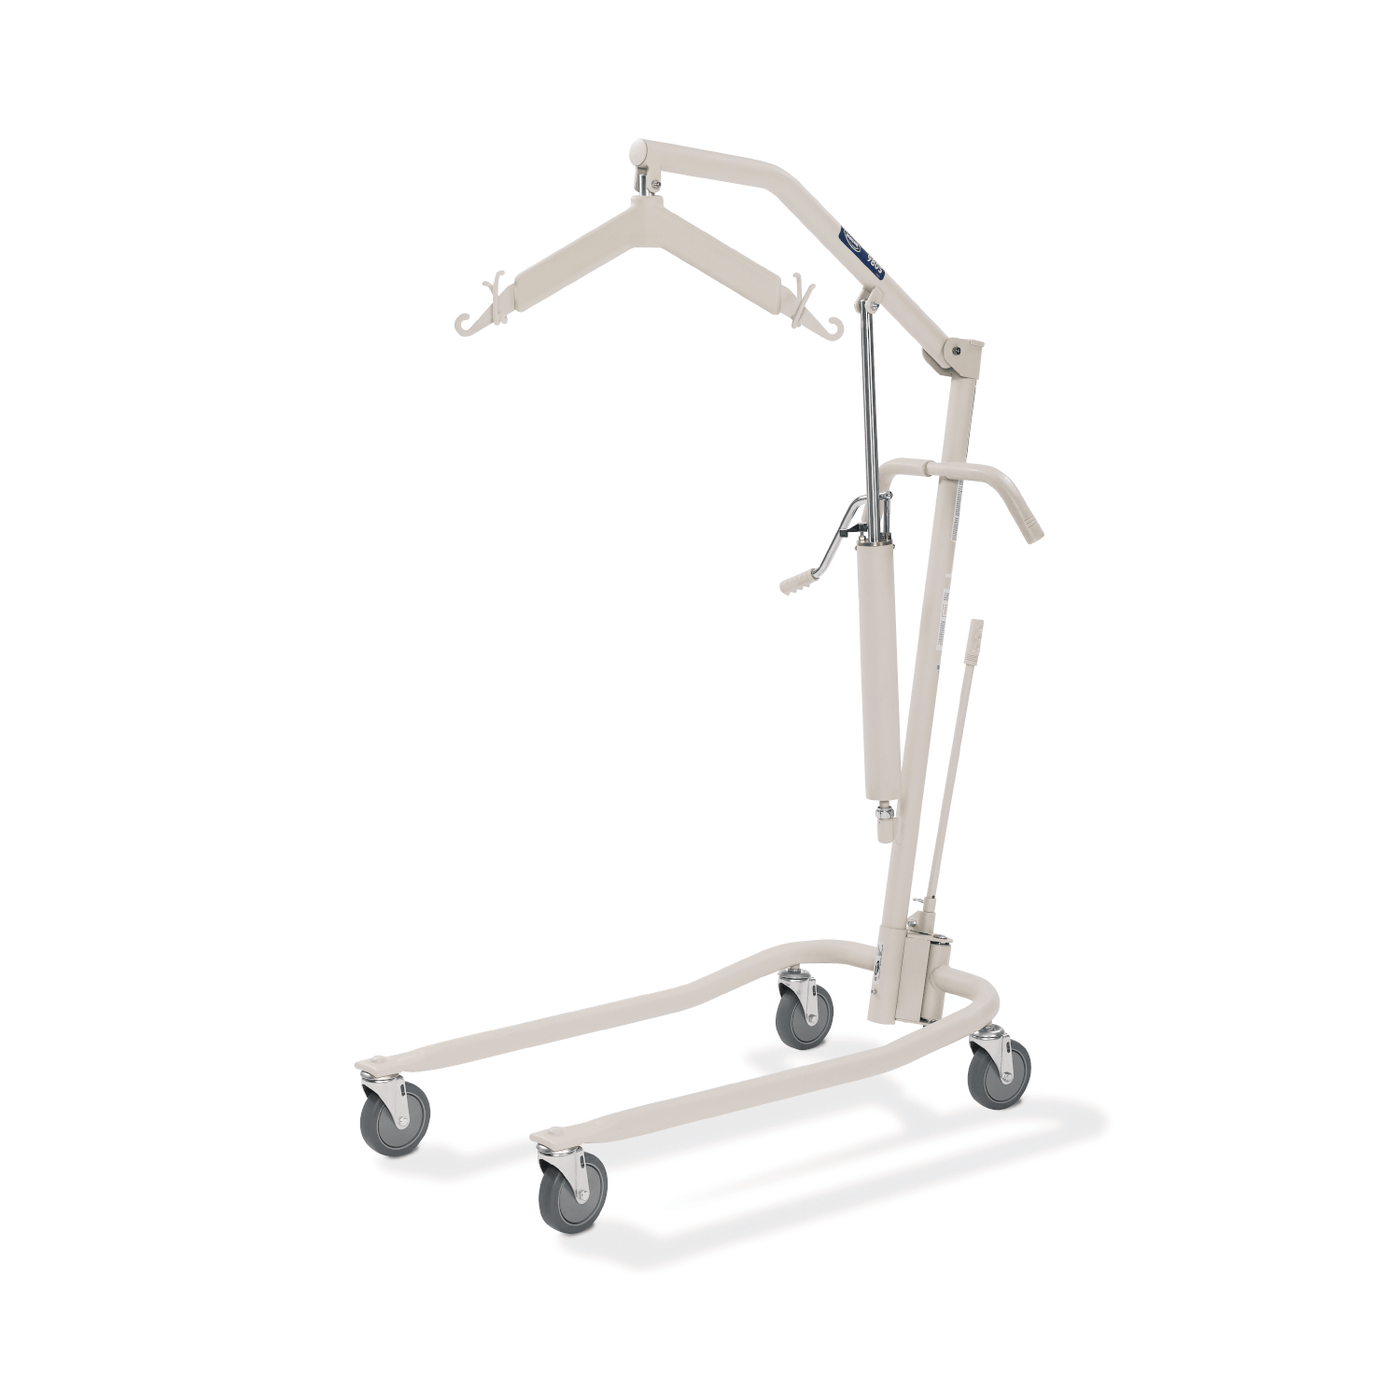 hydraulic power lift reducing physical effort when carrying the patient's weight